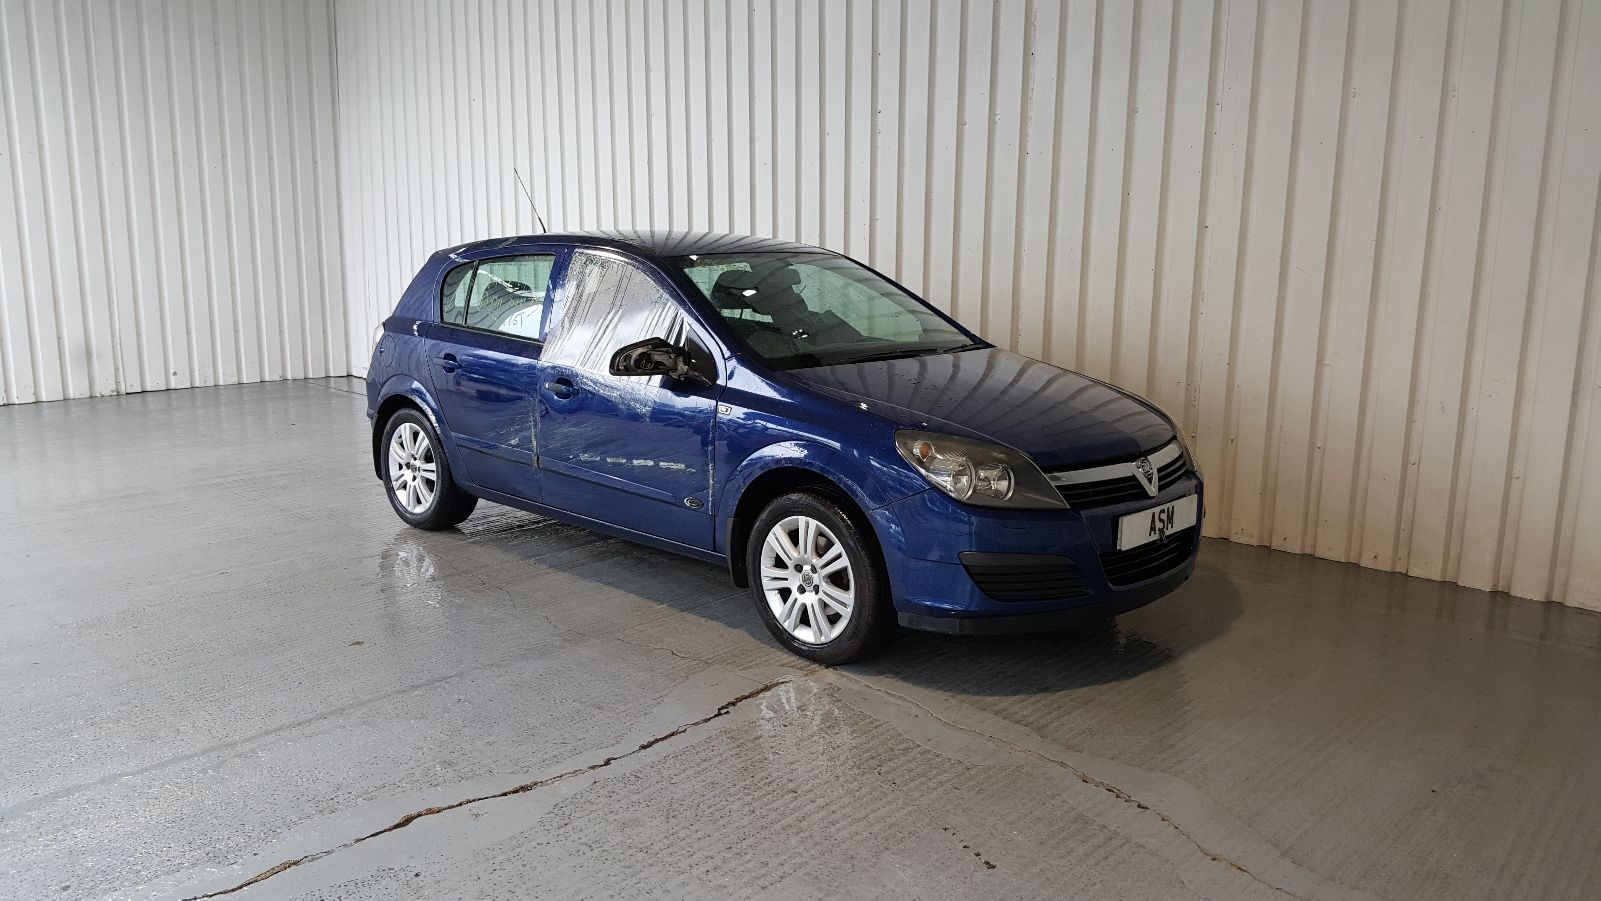 Image for a 2006 Vauxhall Astra 1.6 Petrol Z16XEP Engine